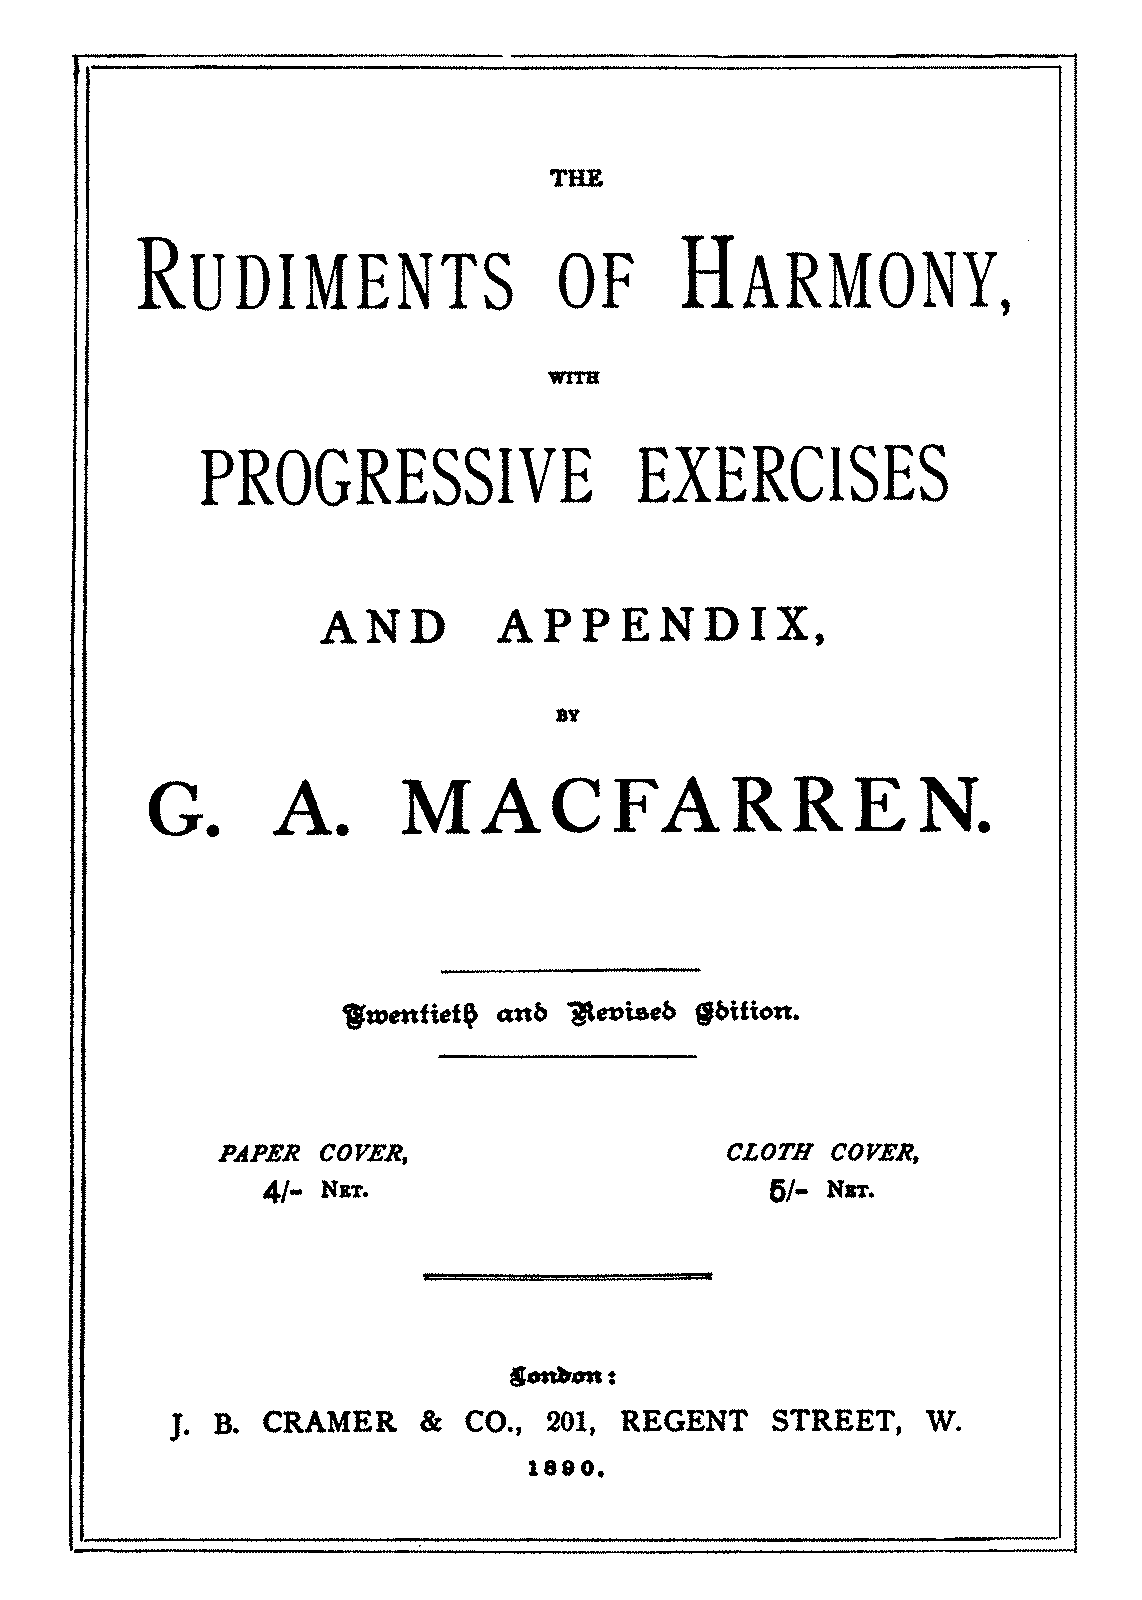 PMLP317866-GAMacfarren The Rudiments of Harmony-ocr.pdf